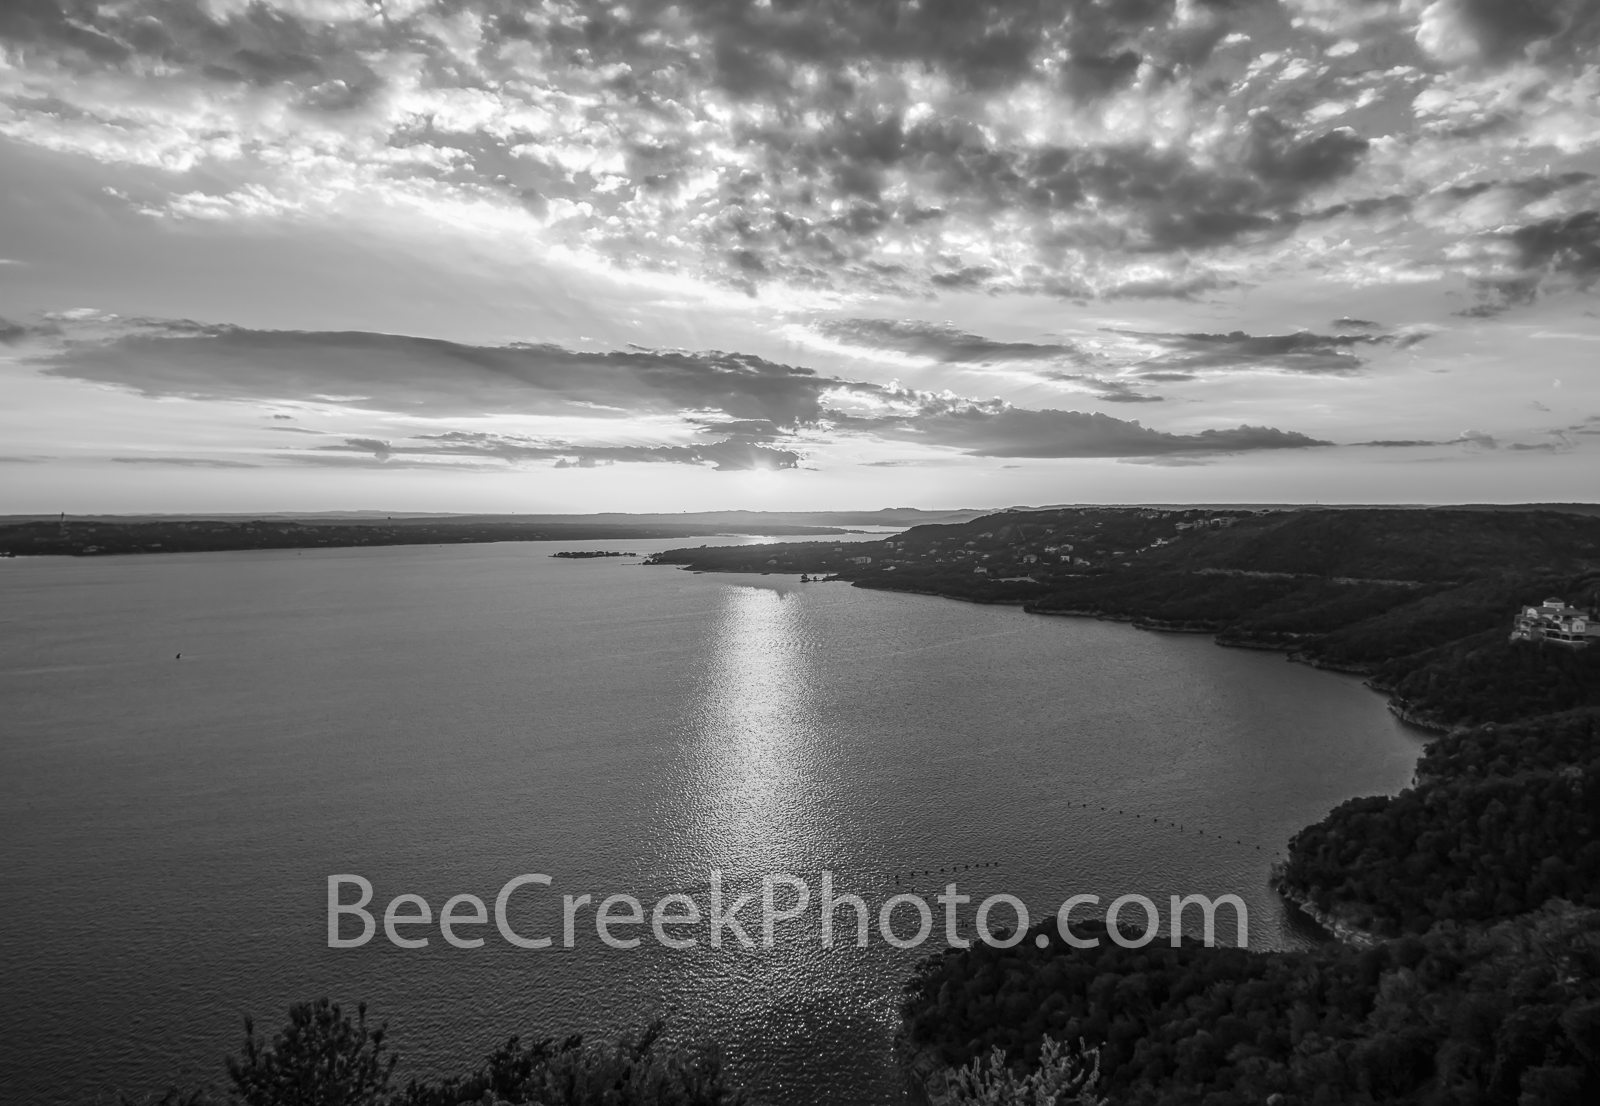 Lake Travis sunset, scenic,  Lake Travis, Oasis, images of Lake Travis, photos of Lake Travis, picture of Lake Travis, landscape, pictures of lake travis, Austin,  picture of austin, black and white, , photo